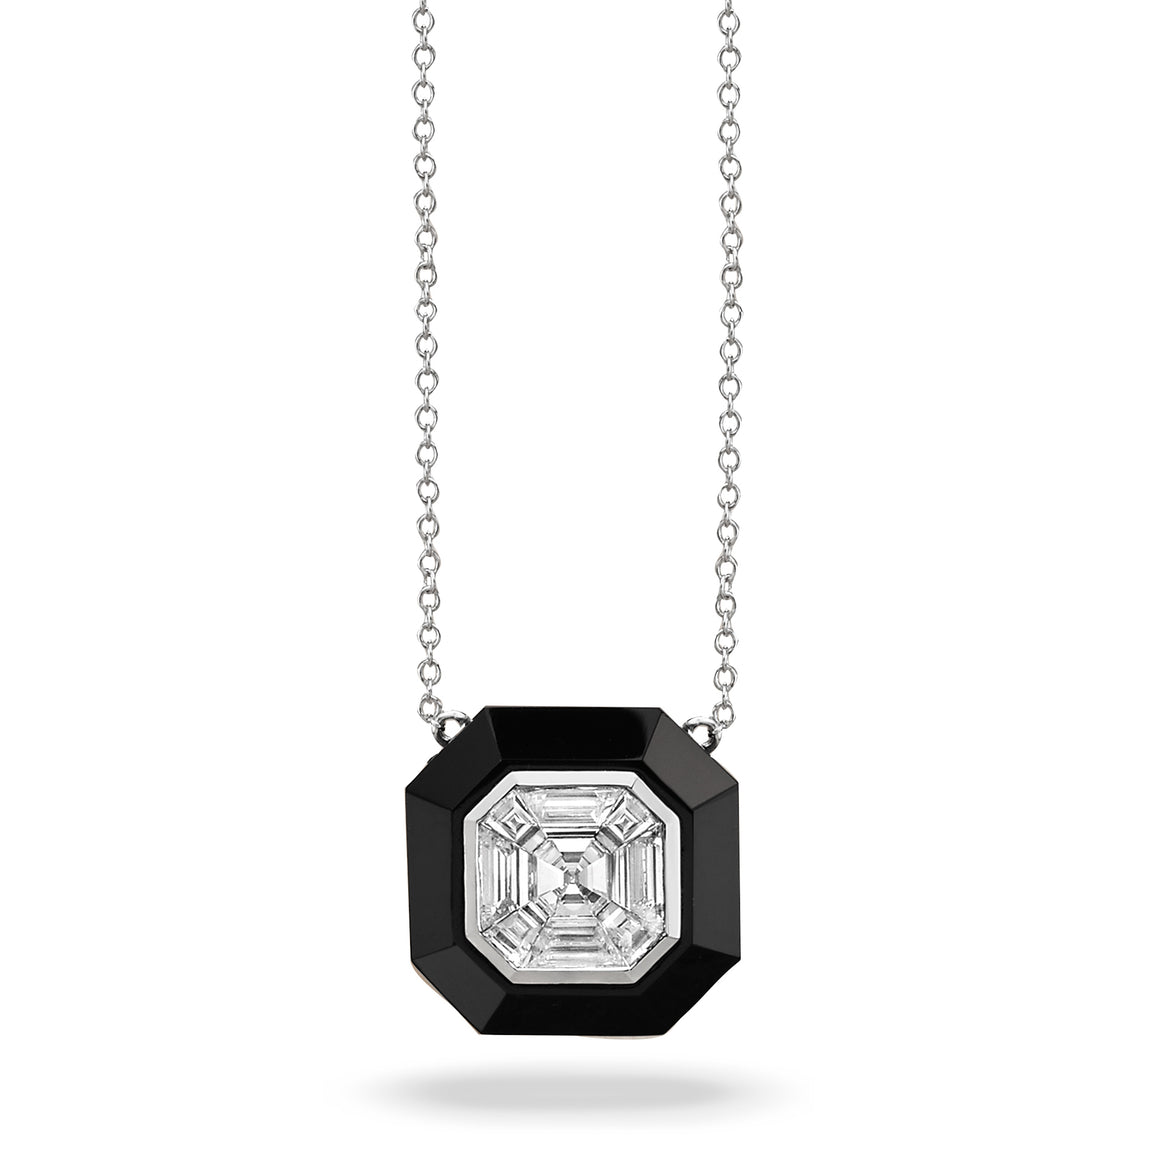 Mondrian Black Onyx and Diamond Necklace by Doves - Talisman Collection Fine Jewelers